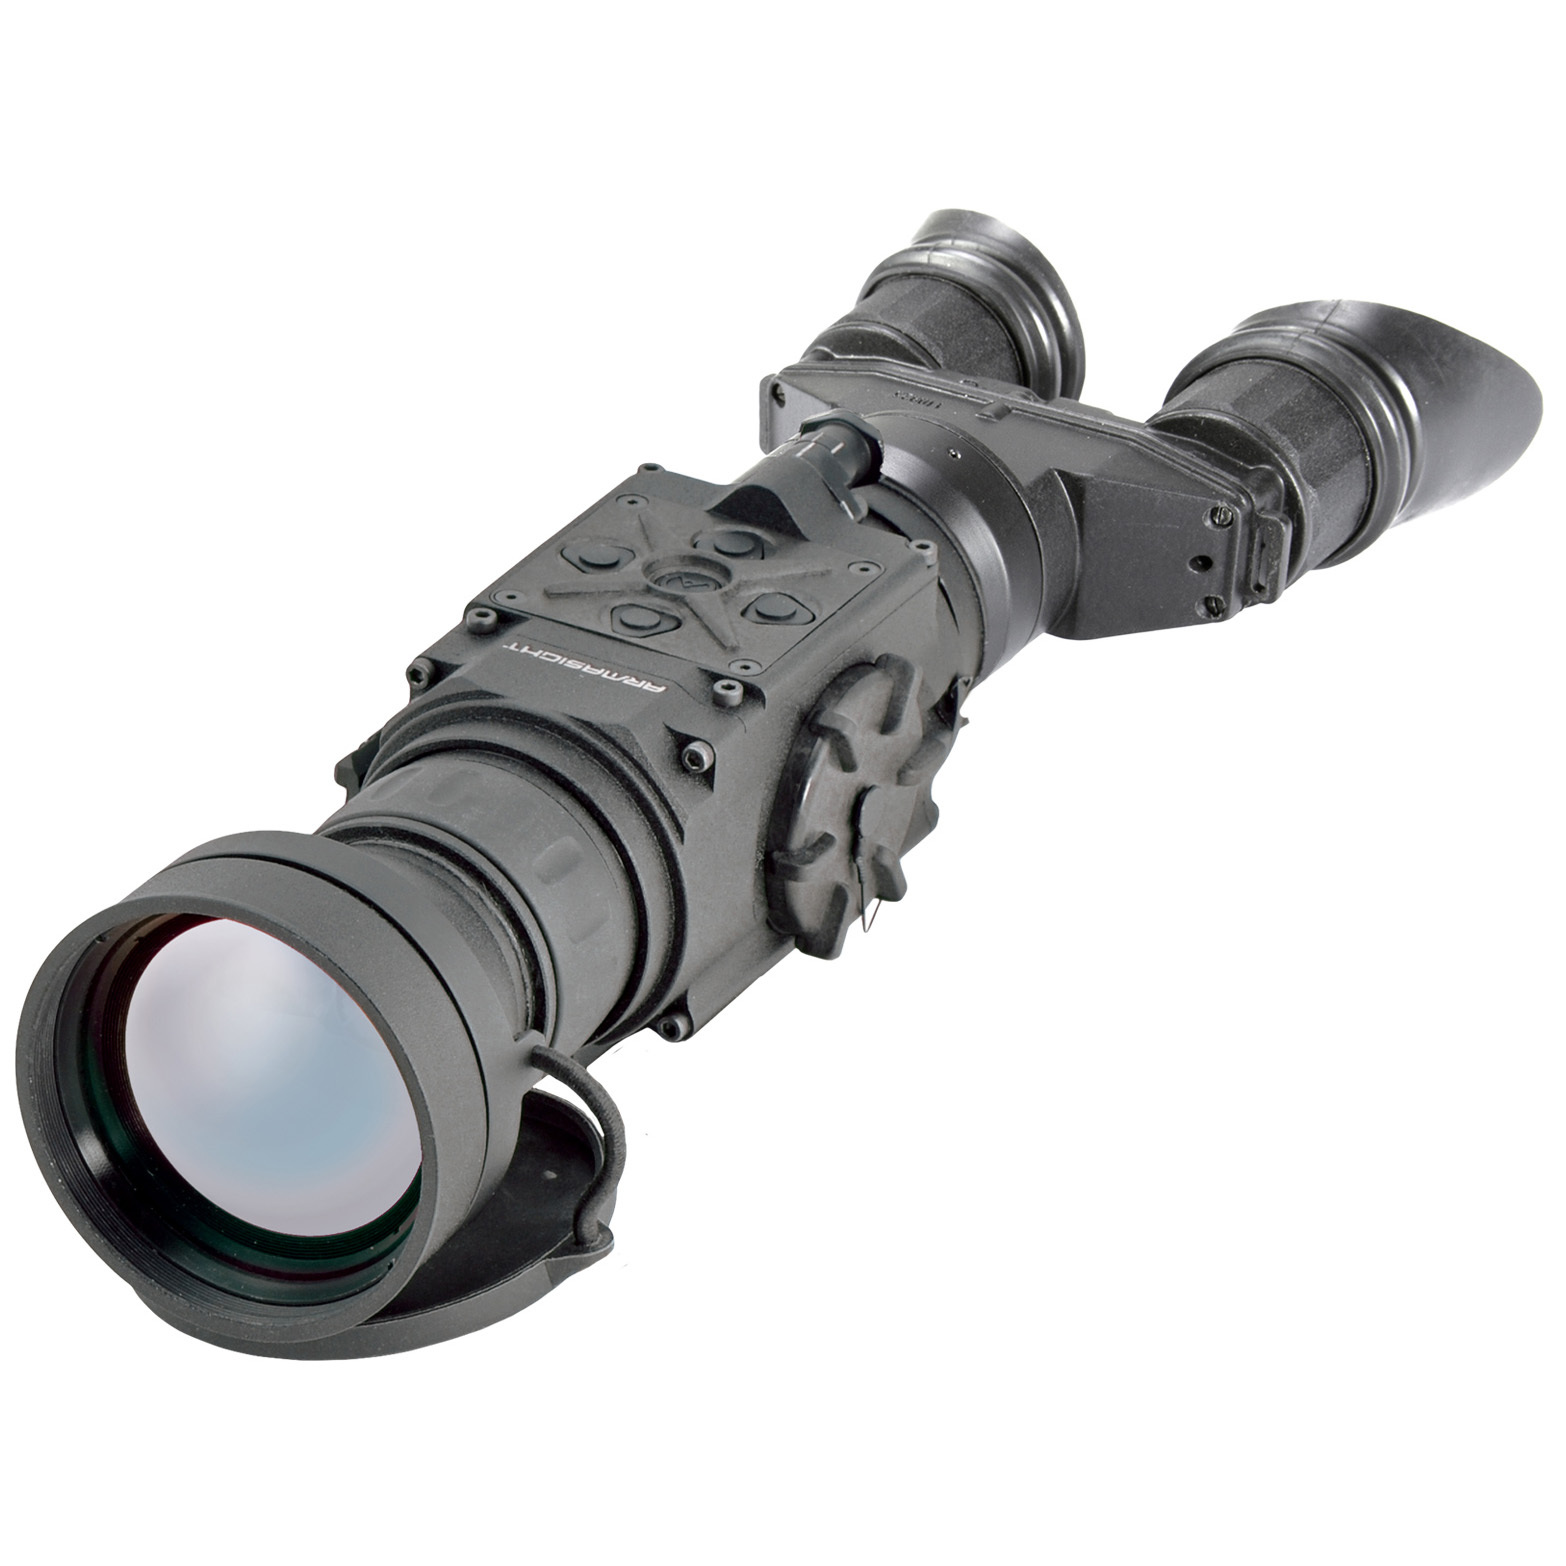 "Armasight Helios 336 5-20x75 (60 Hz) Thermal Bi-Ocular. Best-in-class 60Hz performance means spectacular real-time imaging. Based around the latest FLIR Tau 2 VOx microbolometer core, the Helios 5 an advanced Thermal Imaging Bi-Ocular offering exceptional performance for law enforcement, military and sporting applications. It is a solid-state, uncooled, long-wave infrared handheld Thermal Imager that ""sees"" through the fog of war -- snow, dust, smoke, and haze -- delivering a tactical advantage beyond standard night vision.The Helios 5 boasts superior 60Hz performance, delivering a much higher frame rate than 9Hz or 30Hz. This ensures that what you see is in real-time, guaranteeing that you'll never shoot behind your moving target due to slow-refreshing optics.And, unlike the use of laser targeting or near-infrared illumination to augment night vision optics, the Helios 5 is extremely difficult to detect with other devices, as it emits no visible light or RF energy. Moreover, the bi-ocular design makes for more comfortable long-term viewing sessions.With up to 4X digital zoom -- and all the accessories you need to get started, like advanced wireless remote and video cable -- it's the ultimate mission-ready Imager.Features:Digital E-zoom: 1X, 2X, 4X 60Hz enhanced imaging mean's you'll never worry about hitting behind a moving target because your skill outpaces the technology in your scope Bi-ocular design for comfortable long-term viewing Reads in white hot, black hot, rainbow, or various color mode Video output for easy recording (SD card and recorder sold separately) 100% WATERPROOF Rugged CNC-machined aircraft aluminum alloy construction Rapid start-up Easy and intuitive drop-down user interface Made in the USA Backed by a 3-yr. limited manufacturer's warranty for the system / 10-yr. ltd. for the FLIR core Includes advanced wireless remote with Picatinny adapter mount, video cable, batteries and soft carry case. Specifications:Core: FLIR Tau 2 VOx microbolo - $5,594.99"